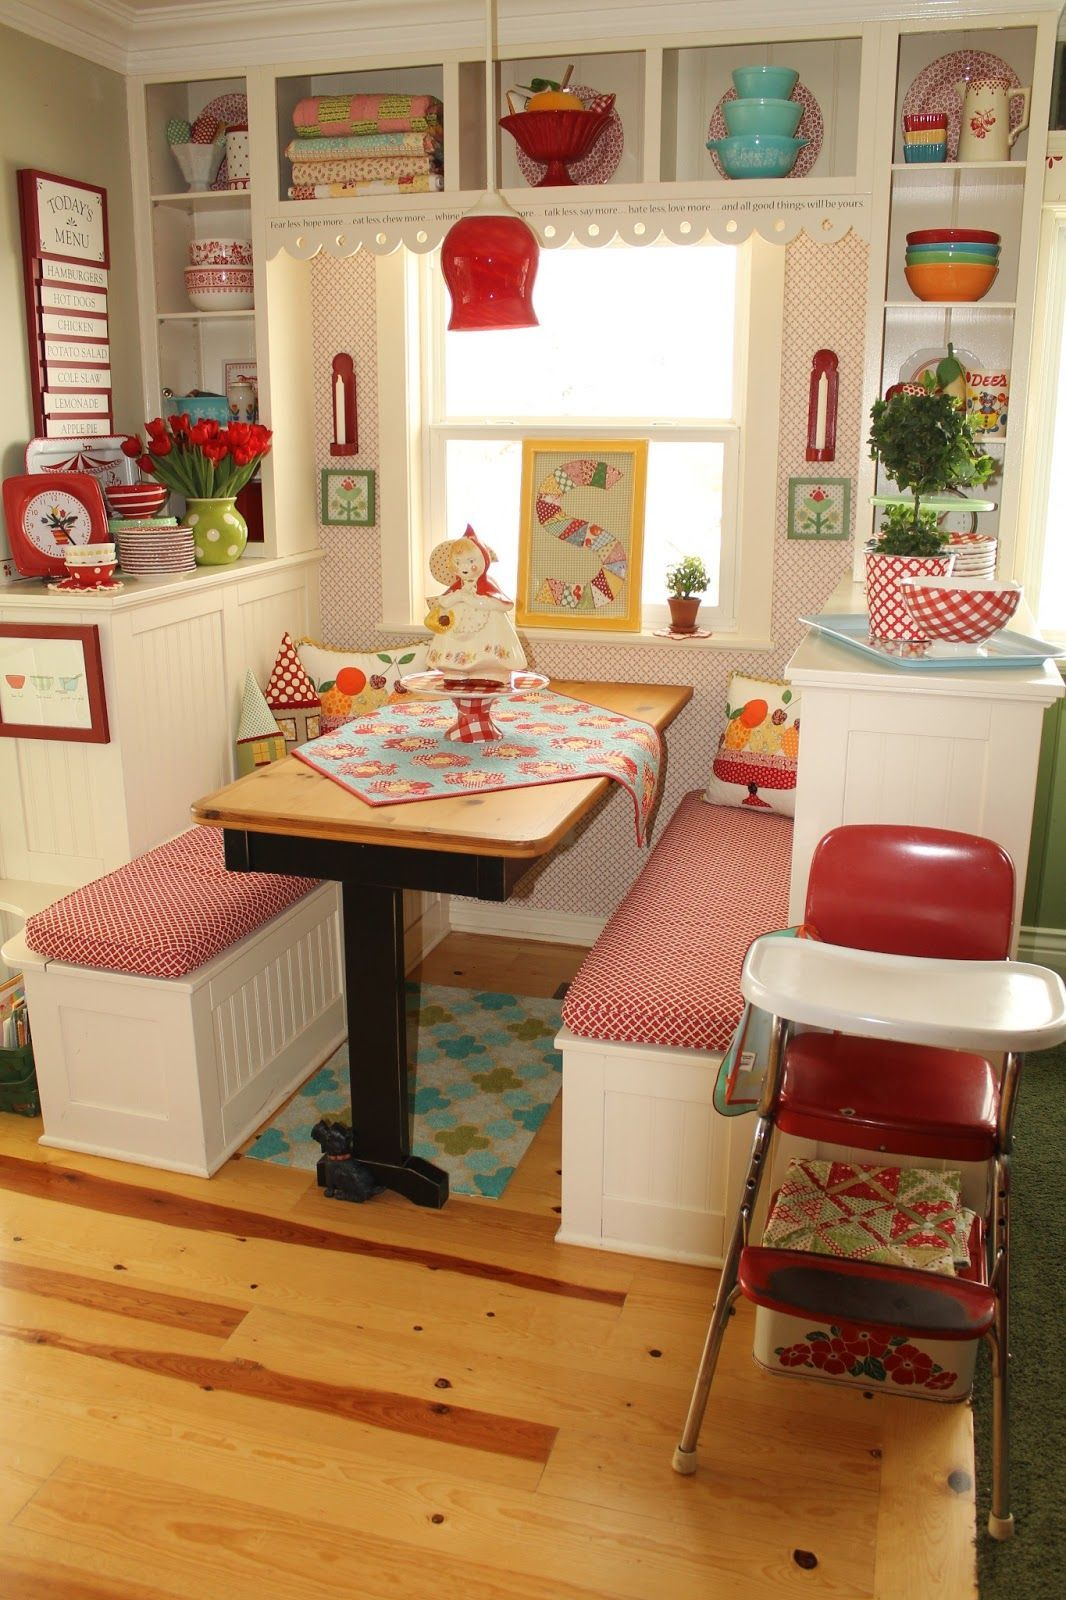 20 lovely retro kitchen design ideas quirky home decor interior design kitchen decor on kitchen ideas quirky id=11275